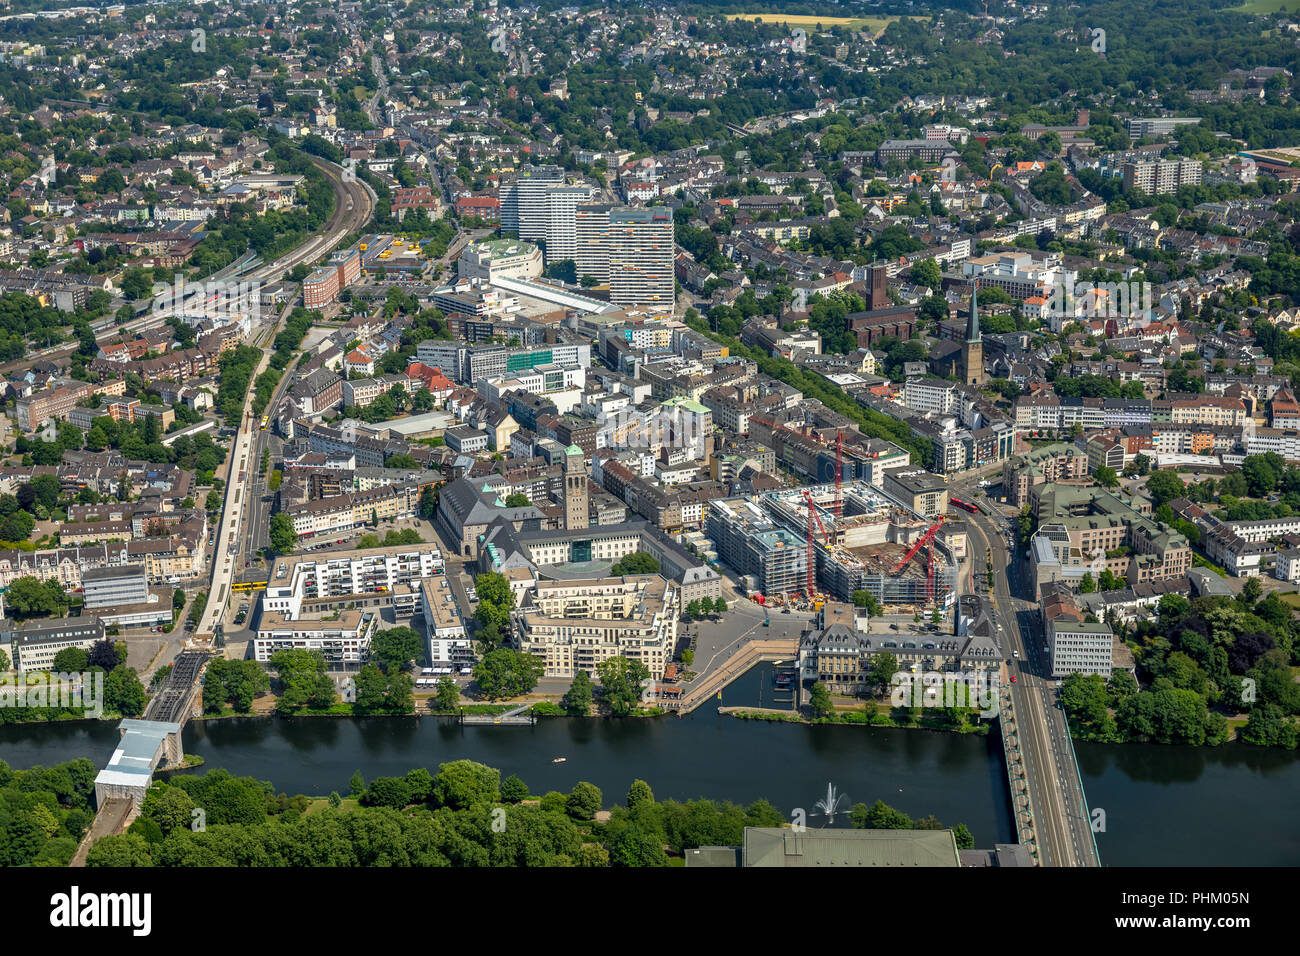 , Aerial view, Mülheim Mitte with view of Ruhrbania, Ruhrpromrnade, Ruhr and City Hall, StadtQuartiers Schlossstraße, SQS 'Mülheim an der Ruhr, Ruhrge - Stock Image